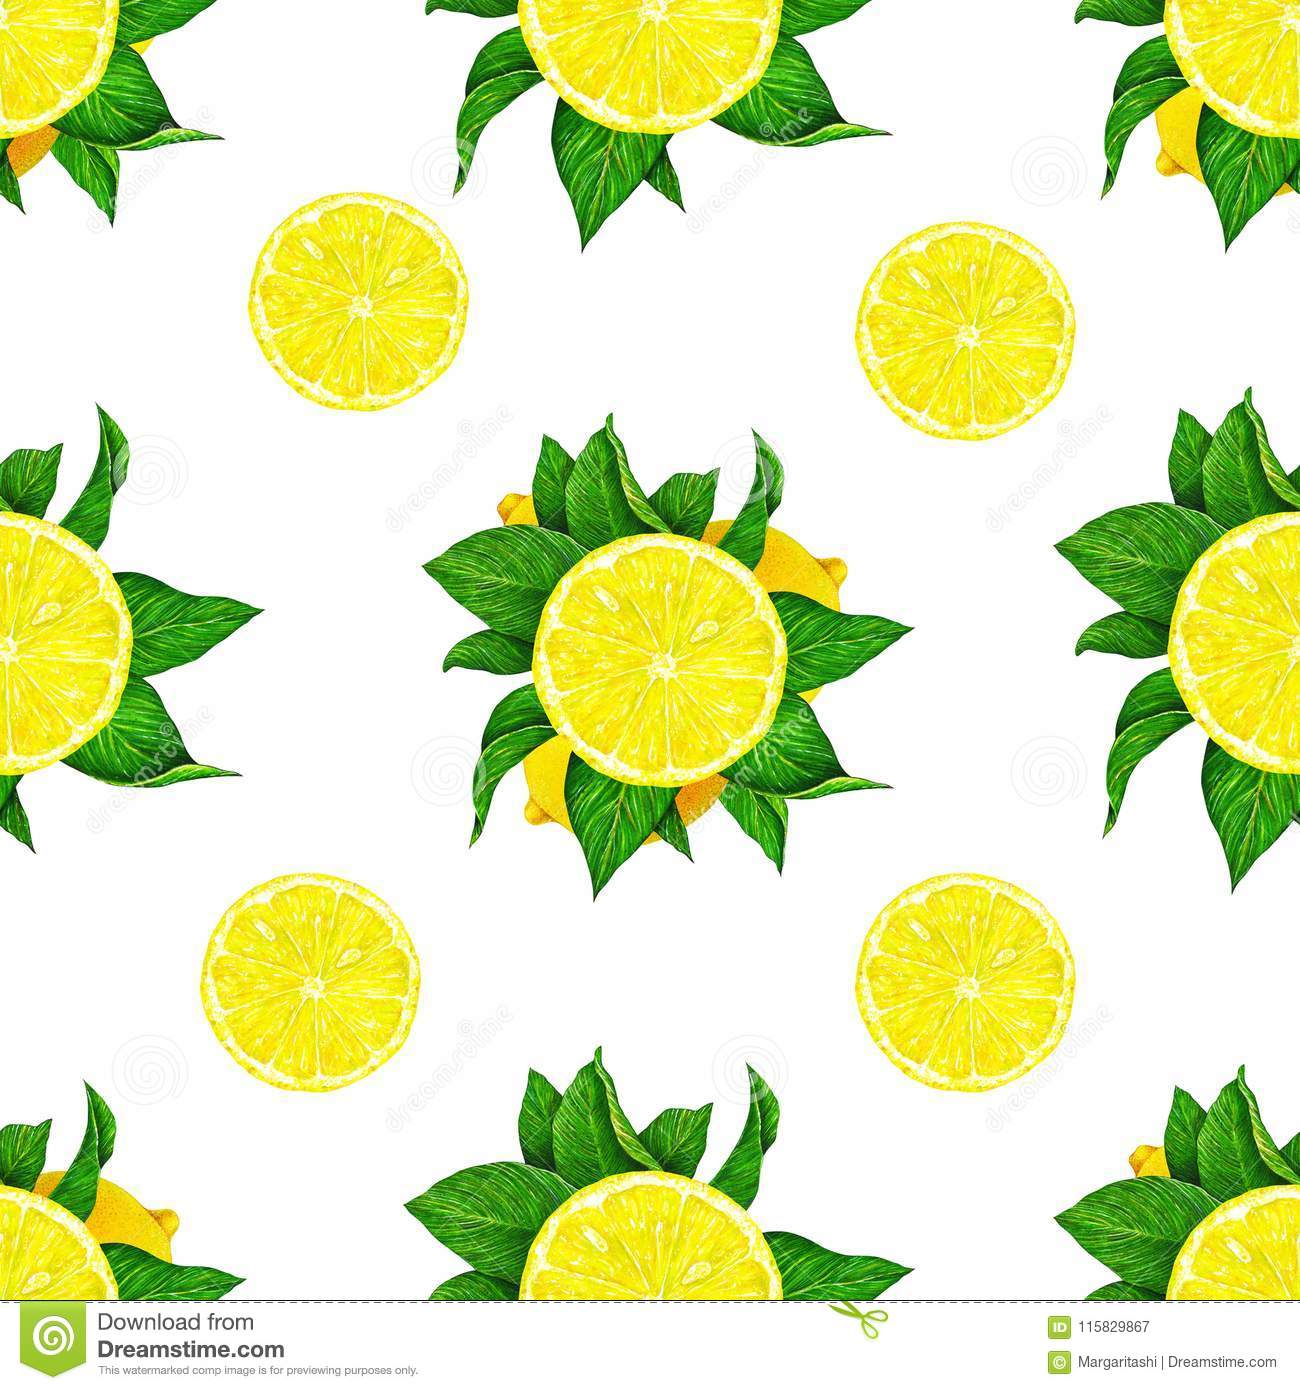 Lemon fruits with green leaves isolated on white background. Watercolor drawing seamless pattern for design.